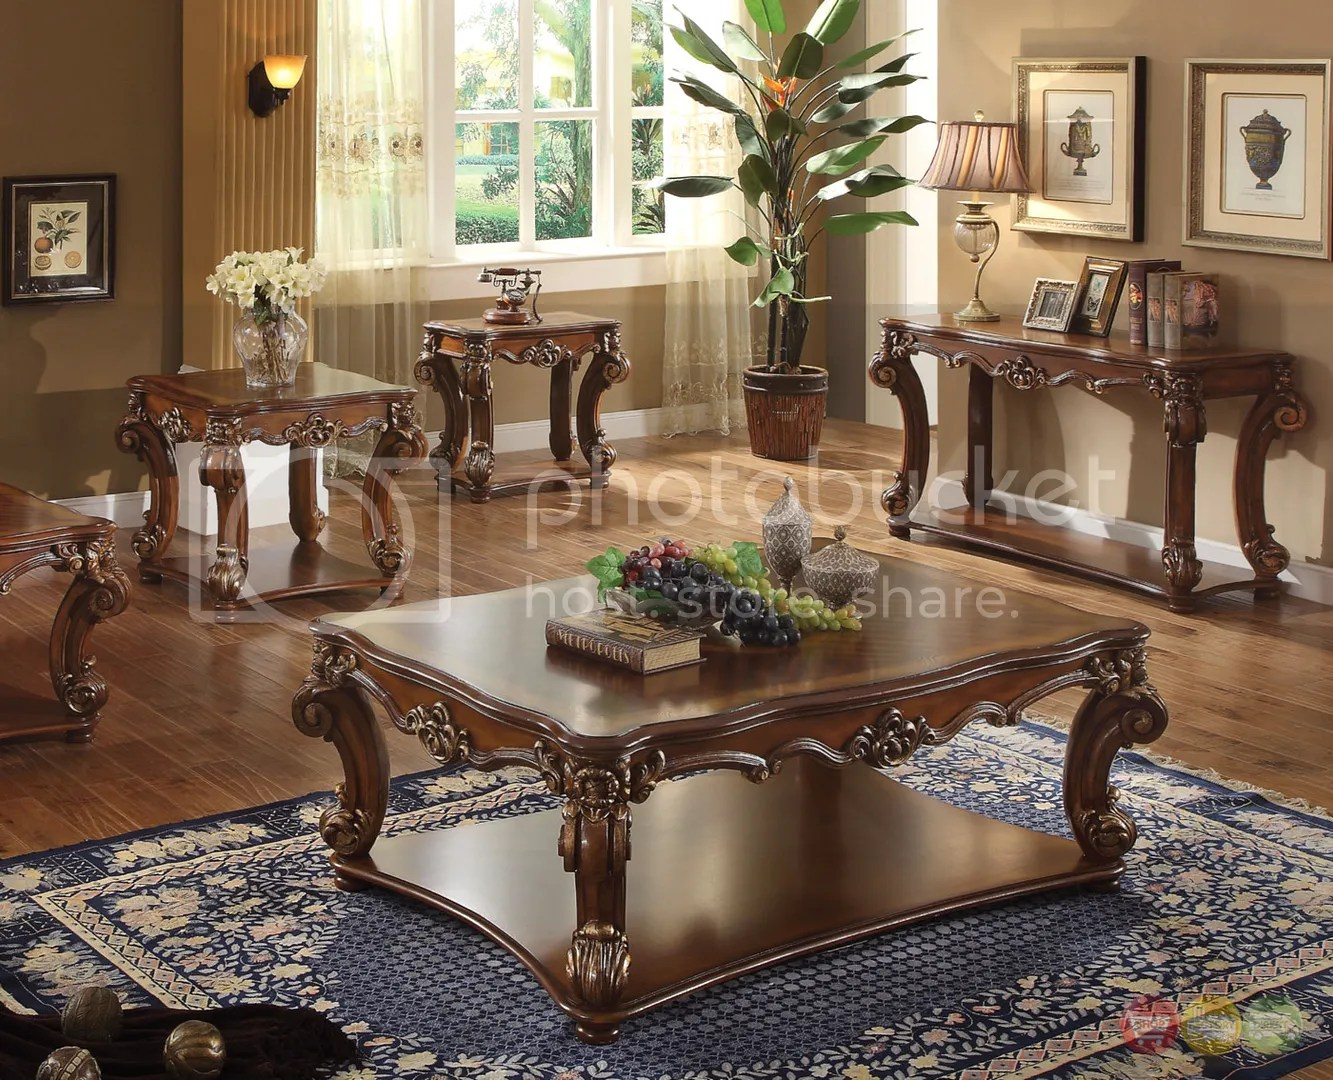 cherry furniture living room how to decorate a with fireplace vendome brown wood top rectangular 3pc table set details about